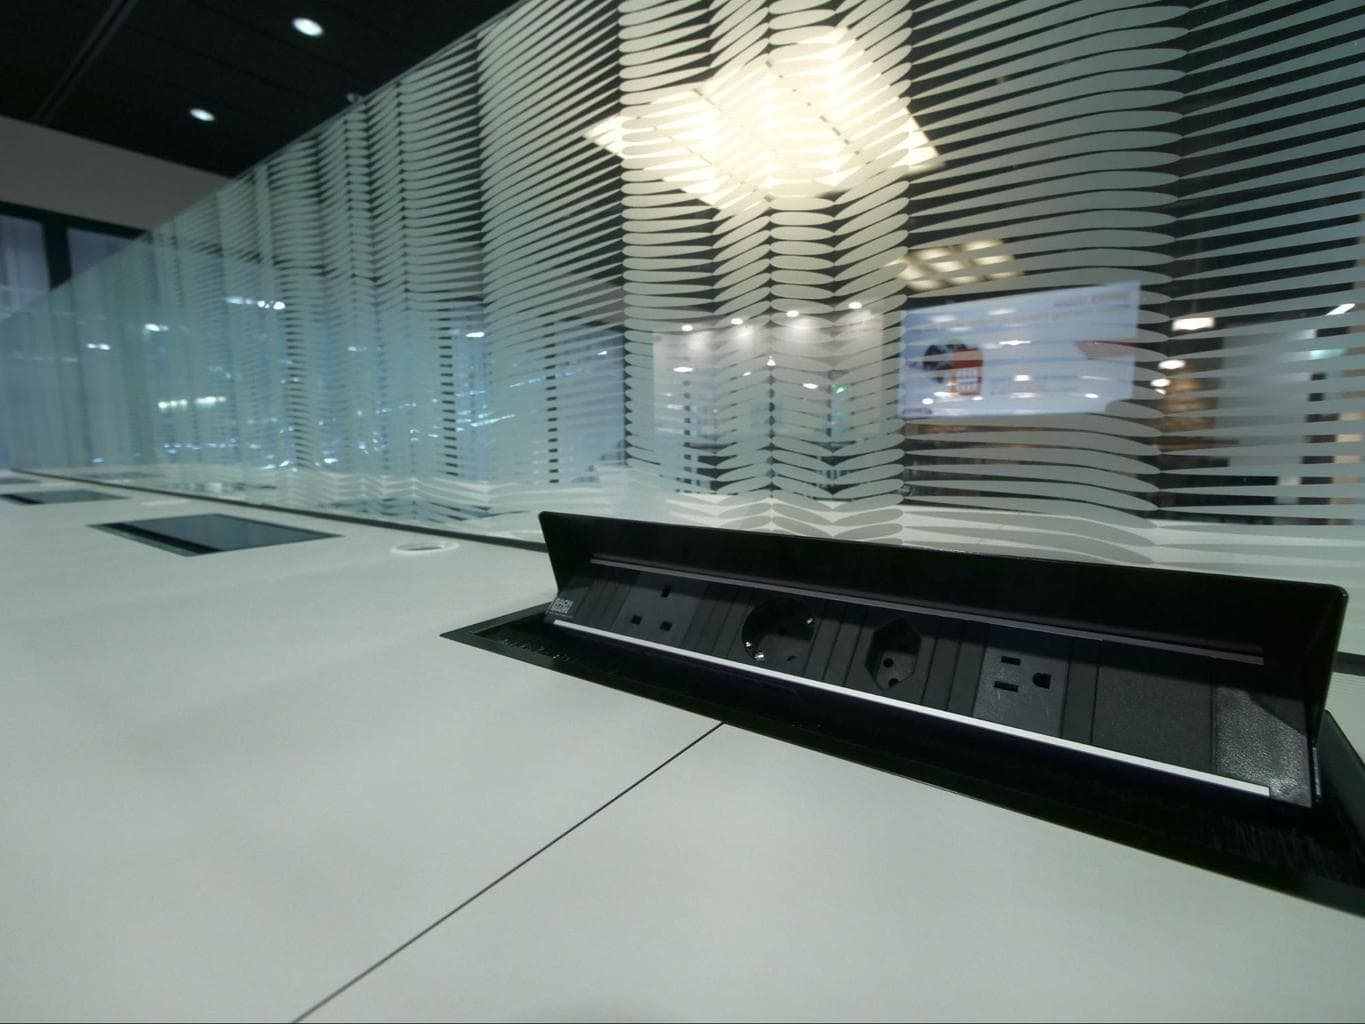 Sockets and working space at Swiss arrival lounge in Zurich